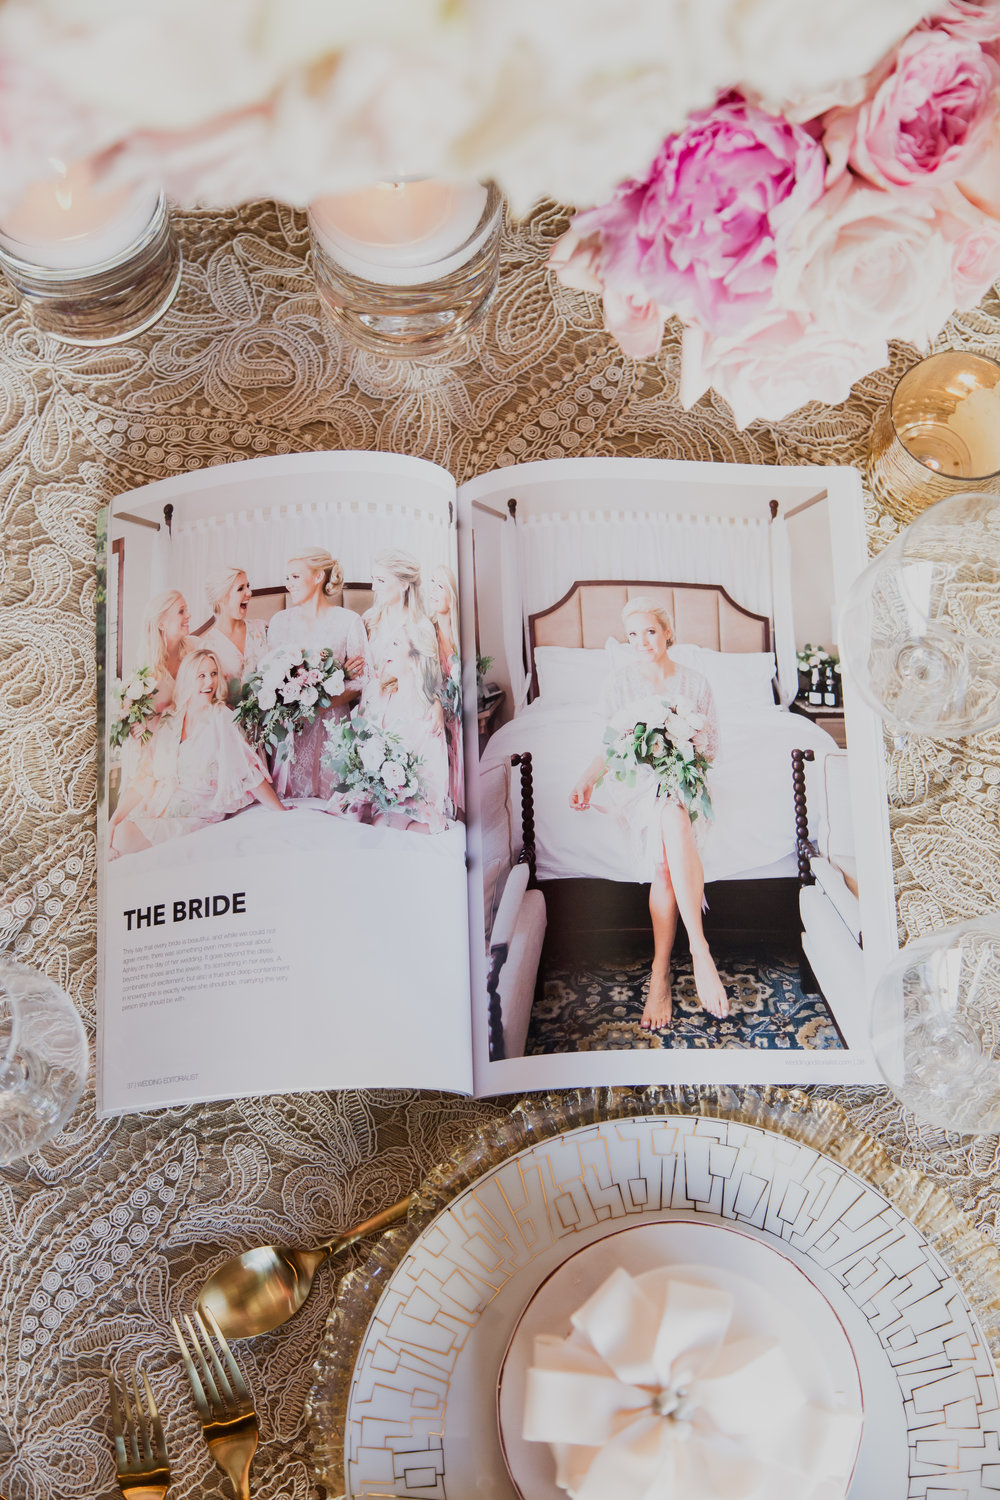 Create a custom wedding magazine about your wedding today!Personalized wedding magazines! Made to order for couples in love. Photo by Adam Frazier.